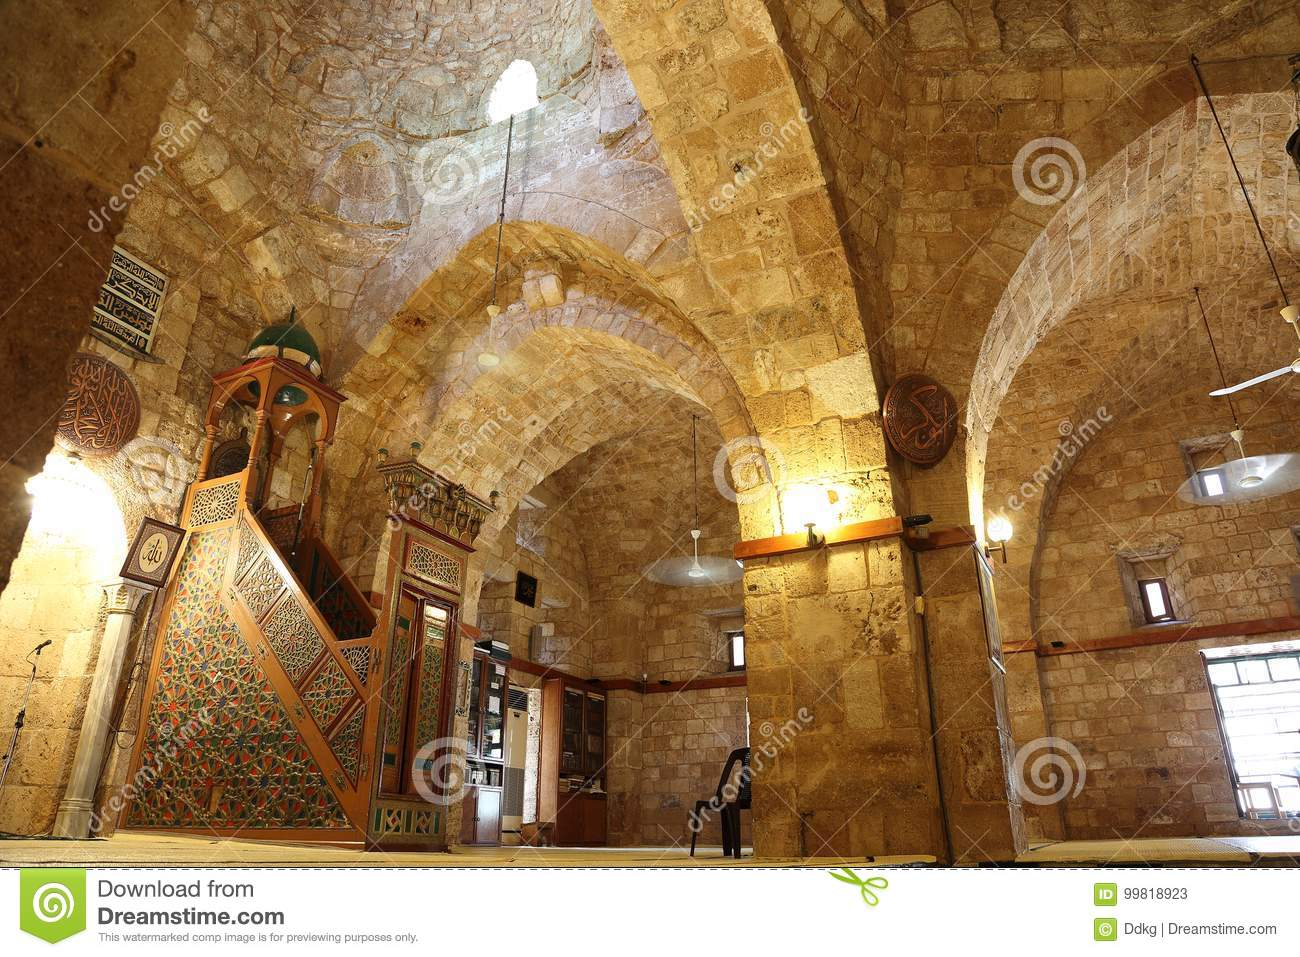 Taynal Mosque Tripoli, Taynal Mosque, Tripoli, Lebanon Stock Photo - Image: 99818923